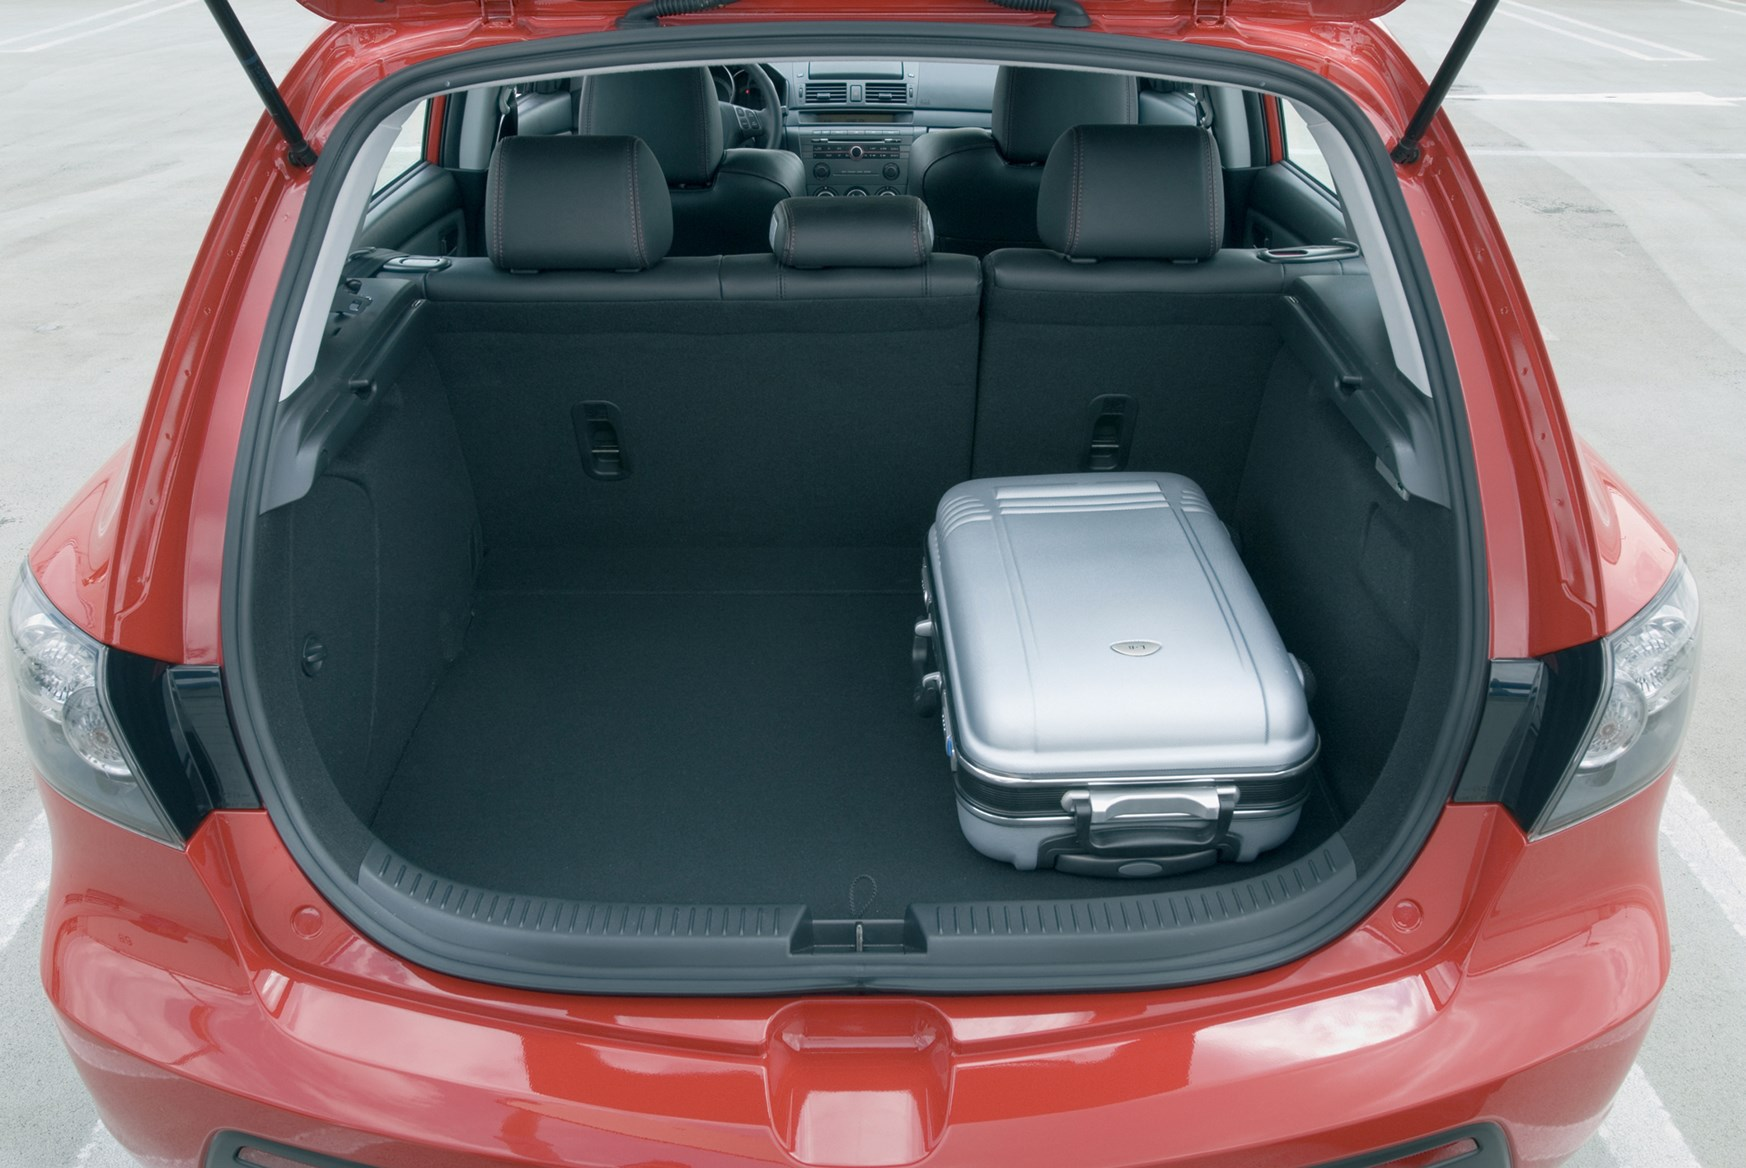 Mazda 3 Sedan Boot Space – Another Cars Log s